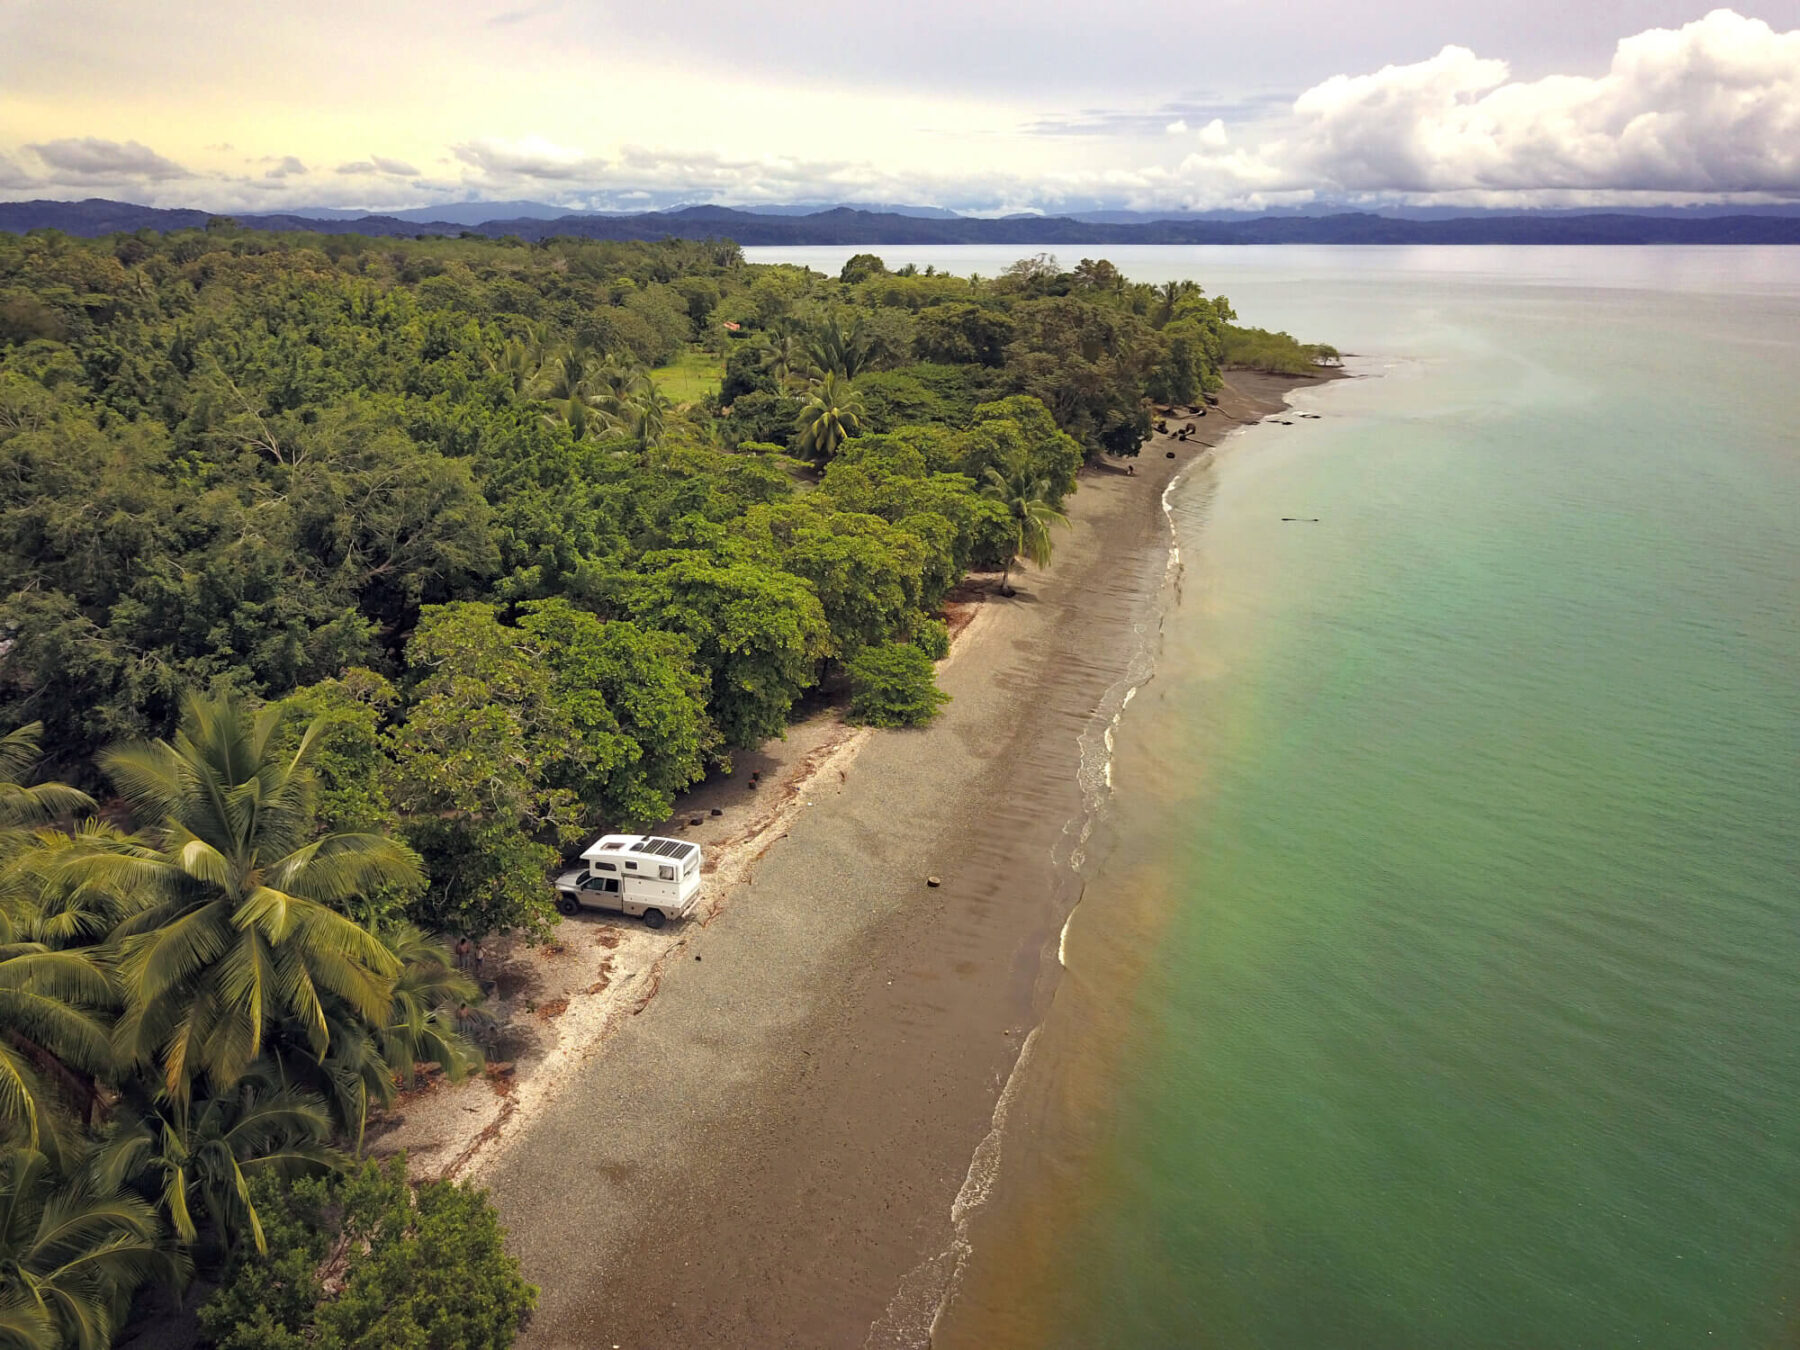 nimbl camper on playa blanca in costa rica